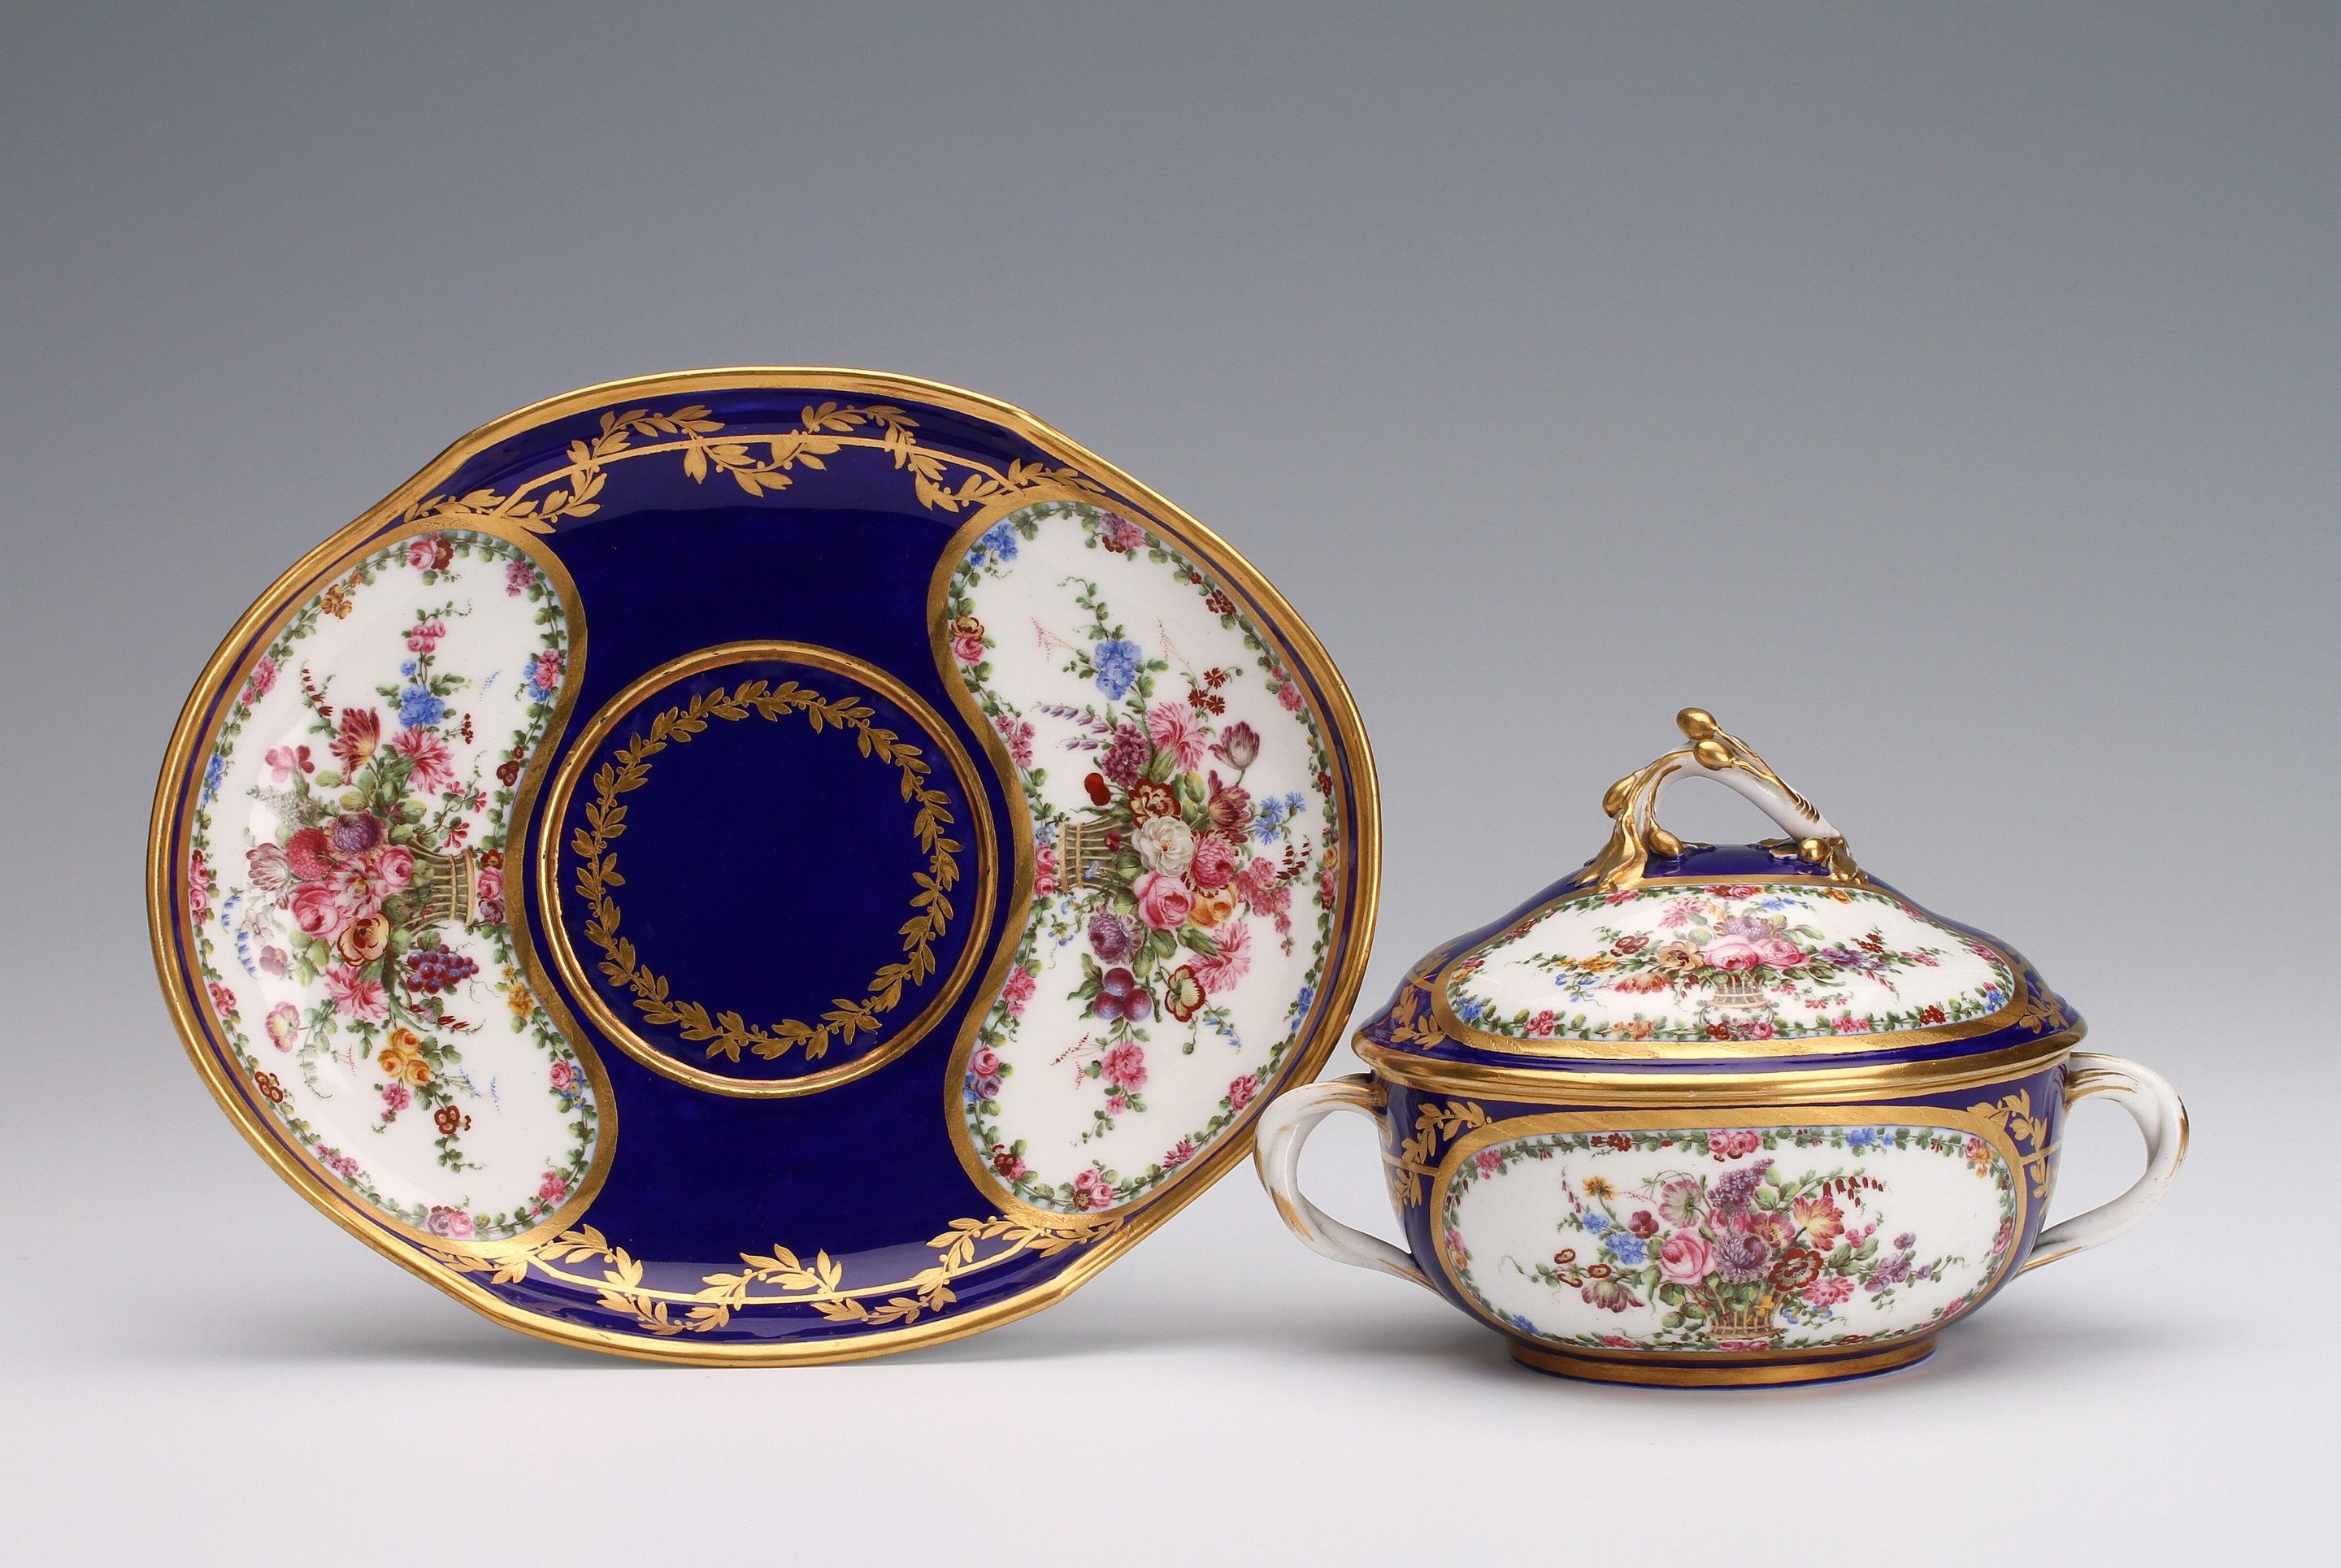 A Sèvres covered bowl and stand, écuelle 'ronde tournée' and a plateau 'ovale' of the fourth size 1773